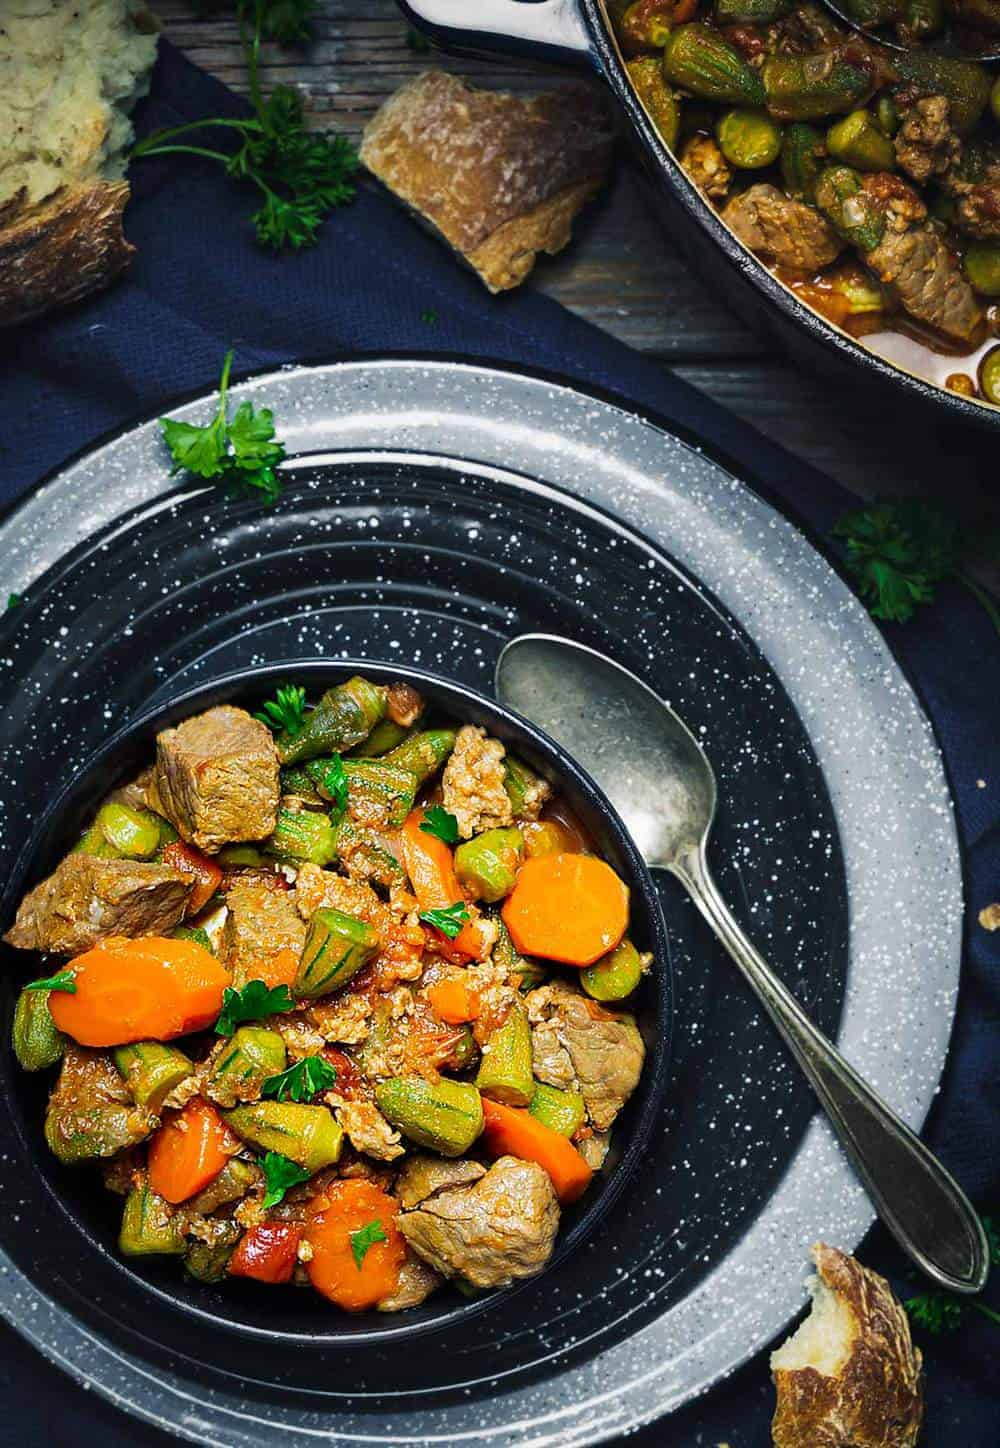 Plated bowl of okra stew with meat and vegetables on two larger plates with a spoon.